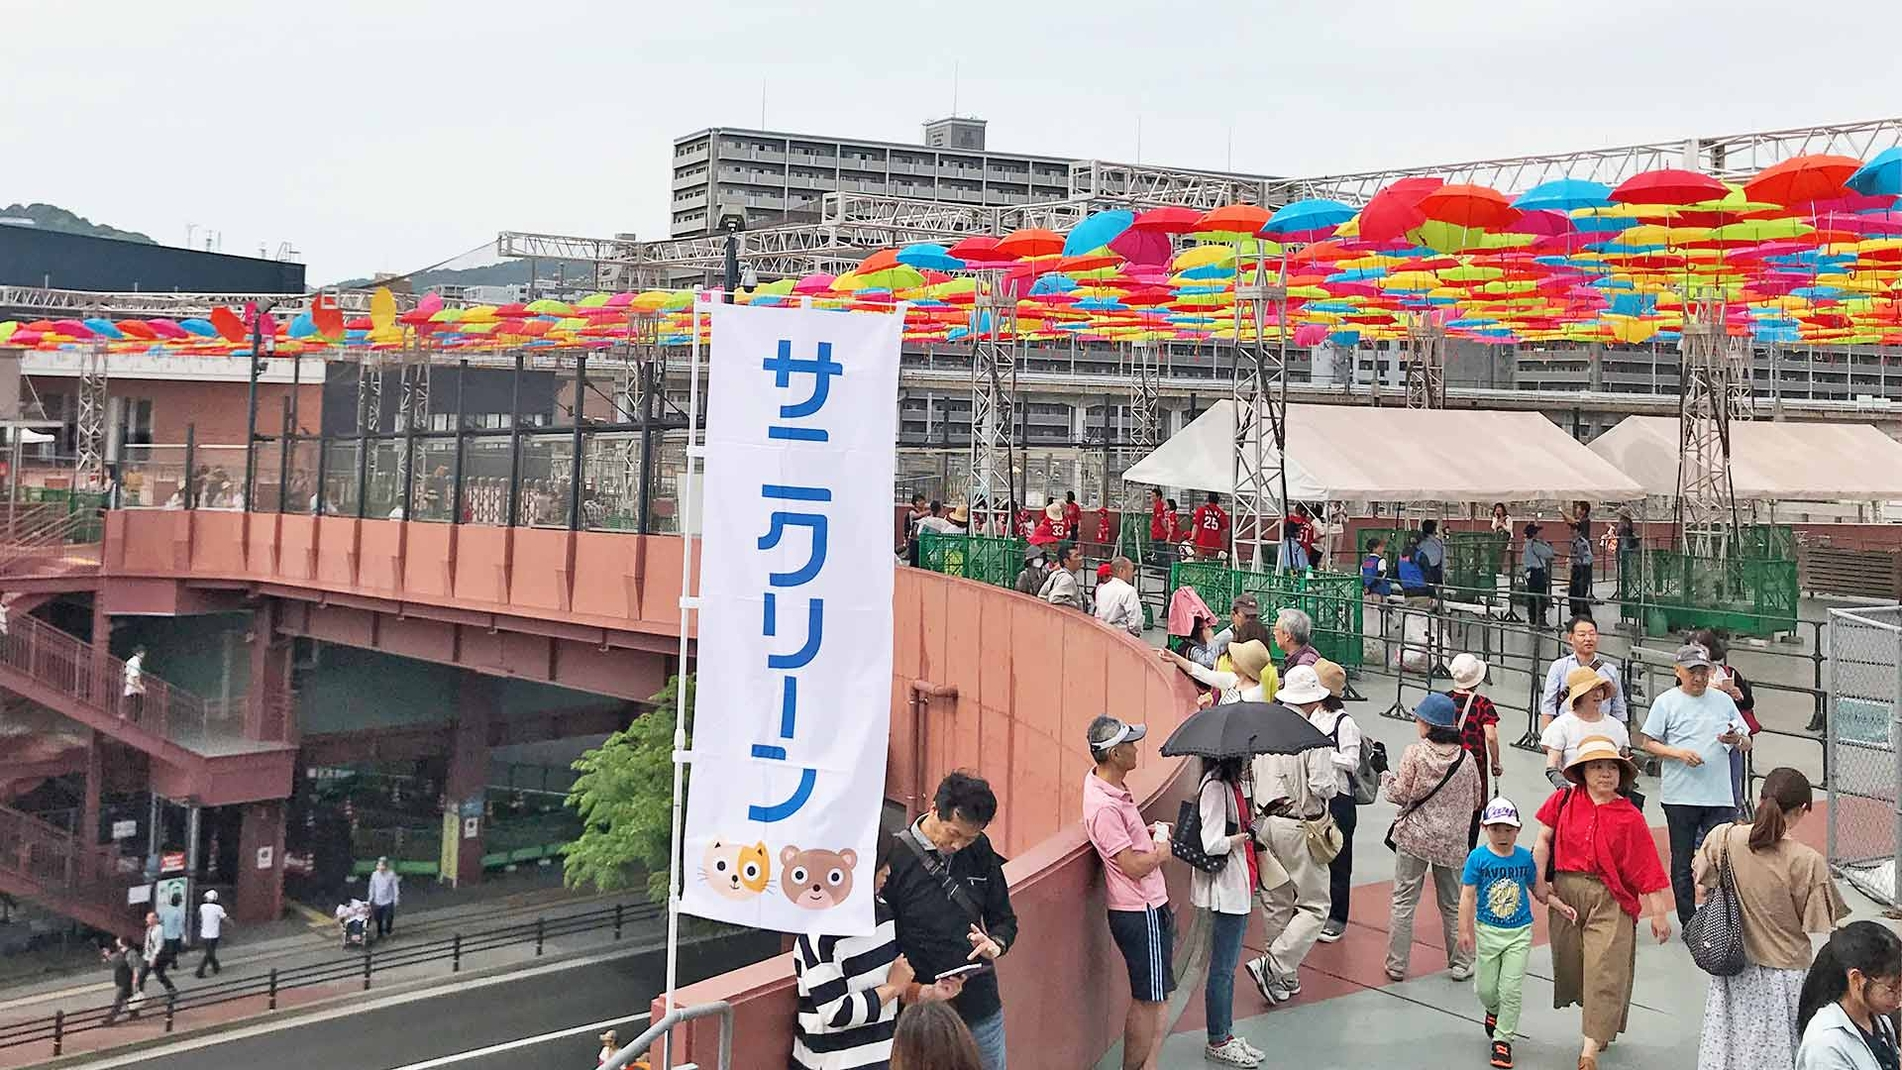 Umbrella Sky Project - Hiroshima'18